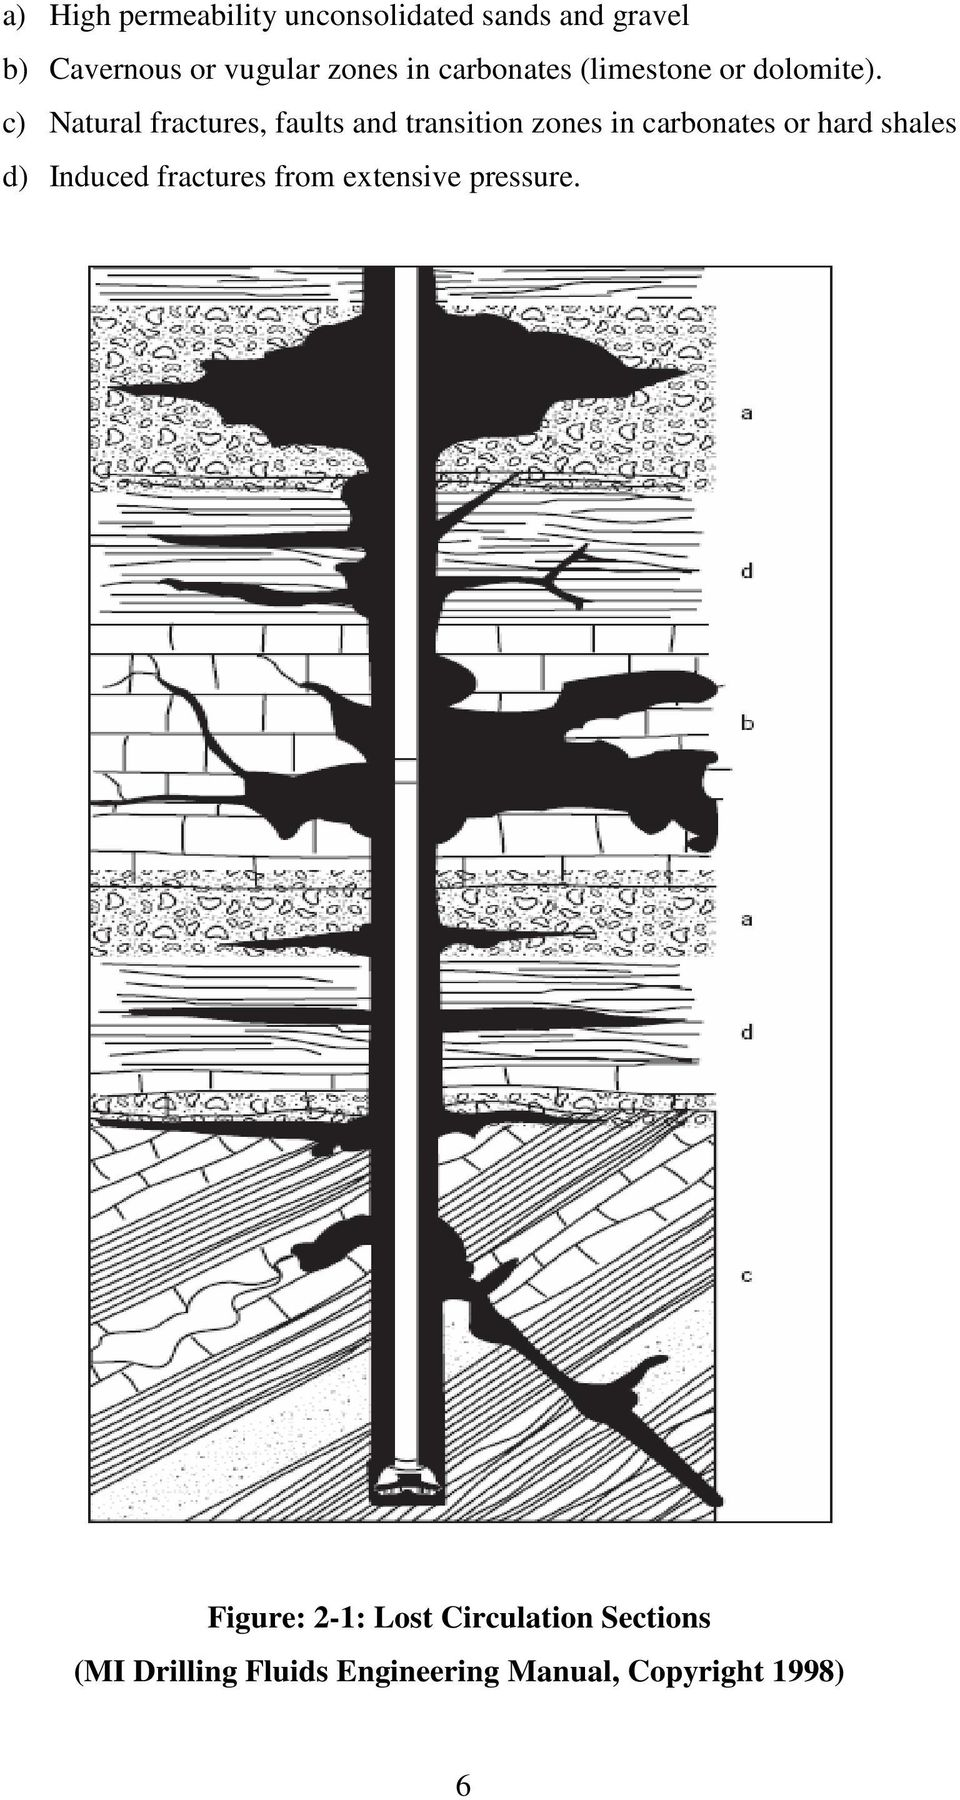 c) Natural fractures, faults and transition zones in carbonates or hard shales d)